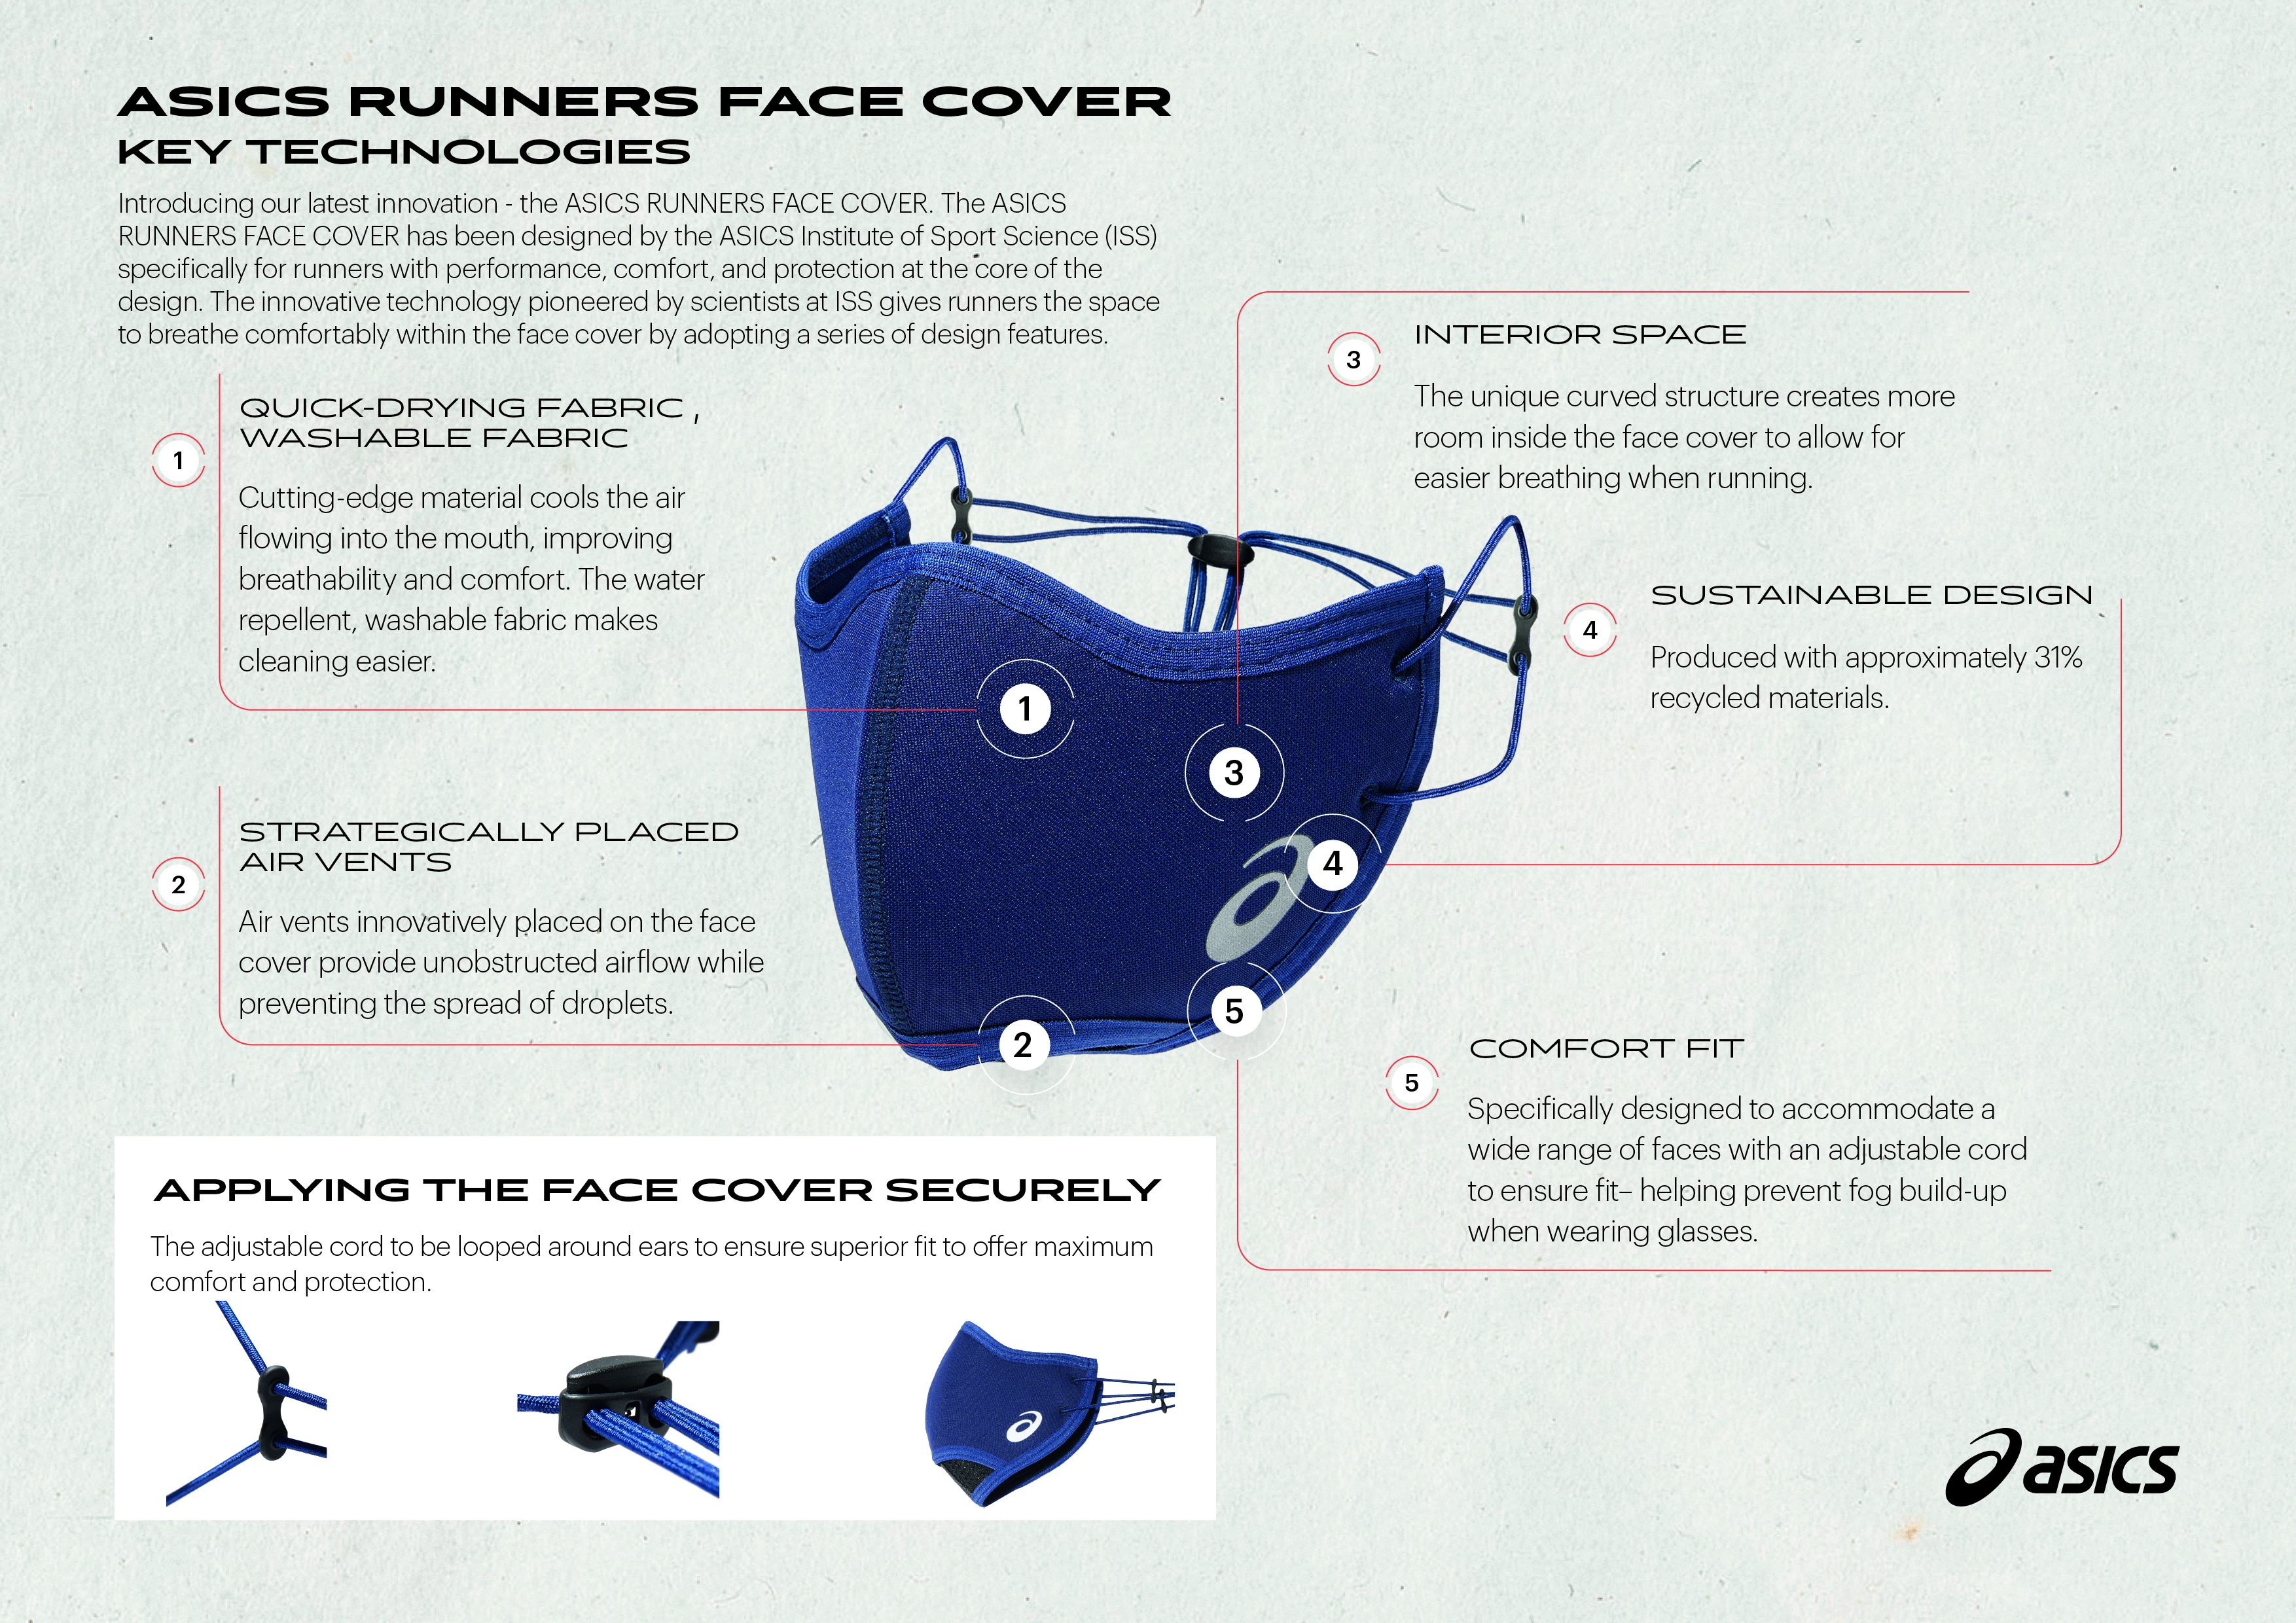 ASICS FrontRunner - INTRODUCING THE ASICS RUNNERS FACE COVER